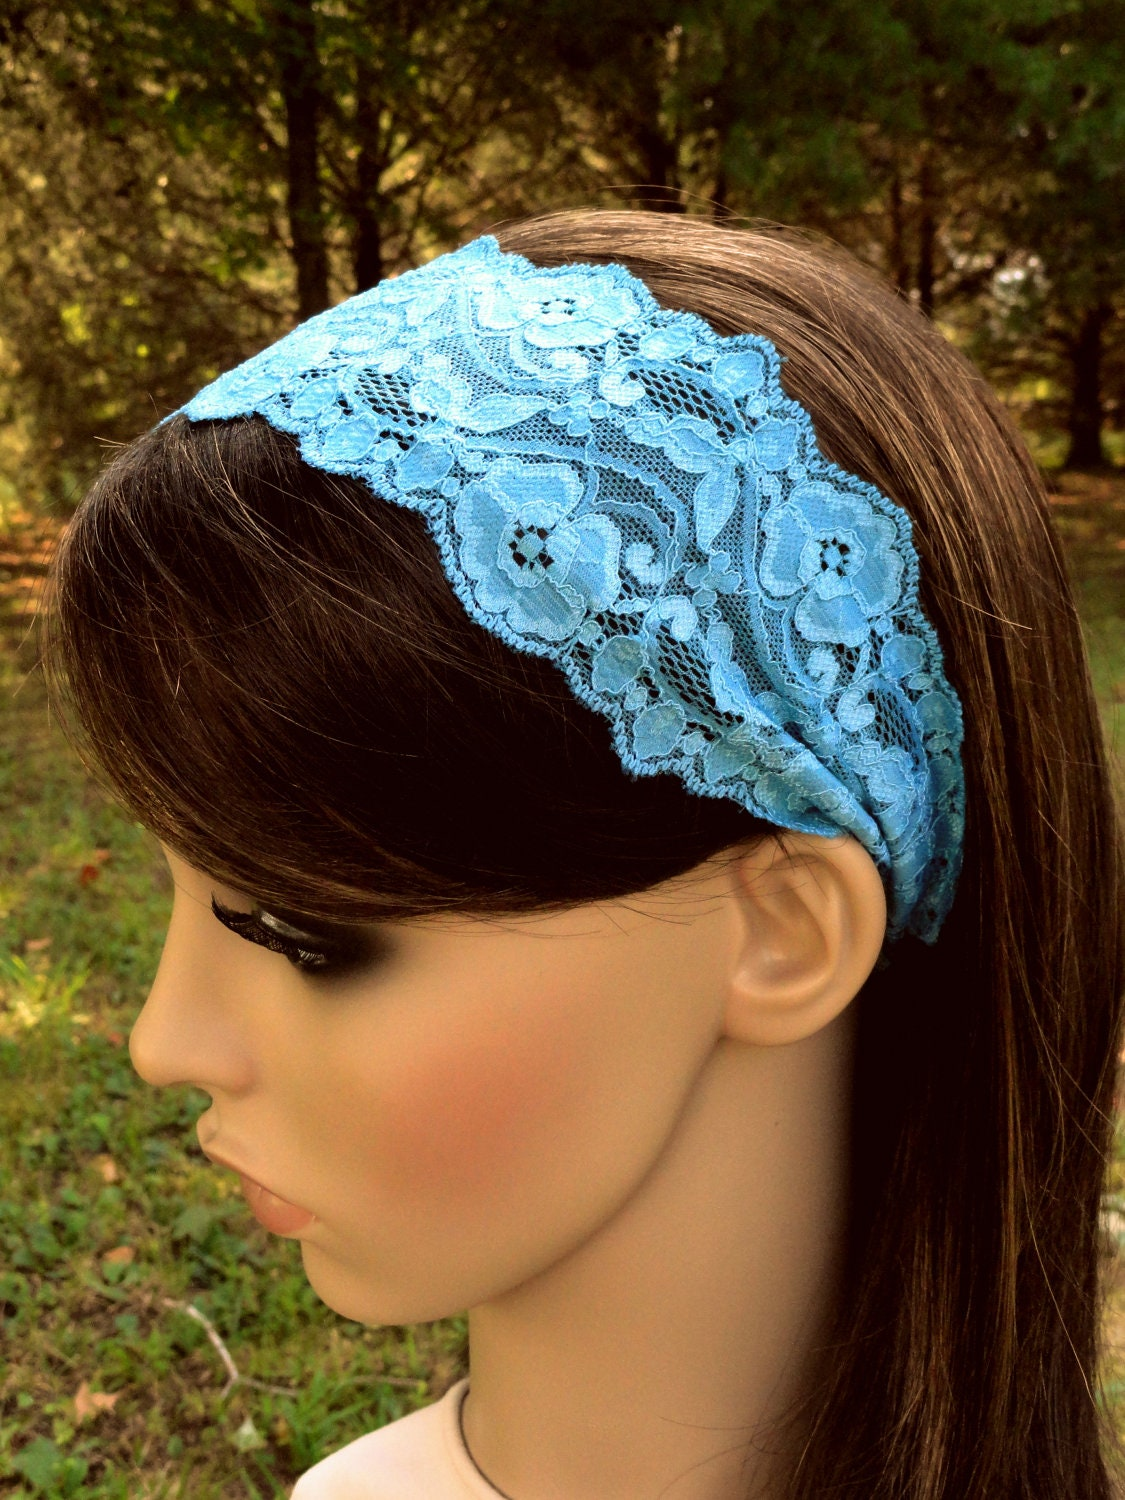 Head band Sapphire Blue Stretch Lace Headband Hair Band Head Wrap Scarf Covering Headcovering